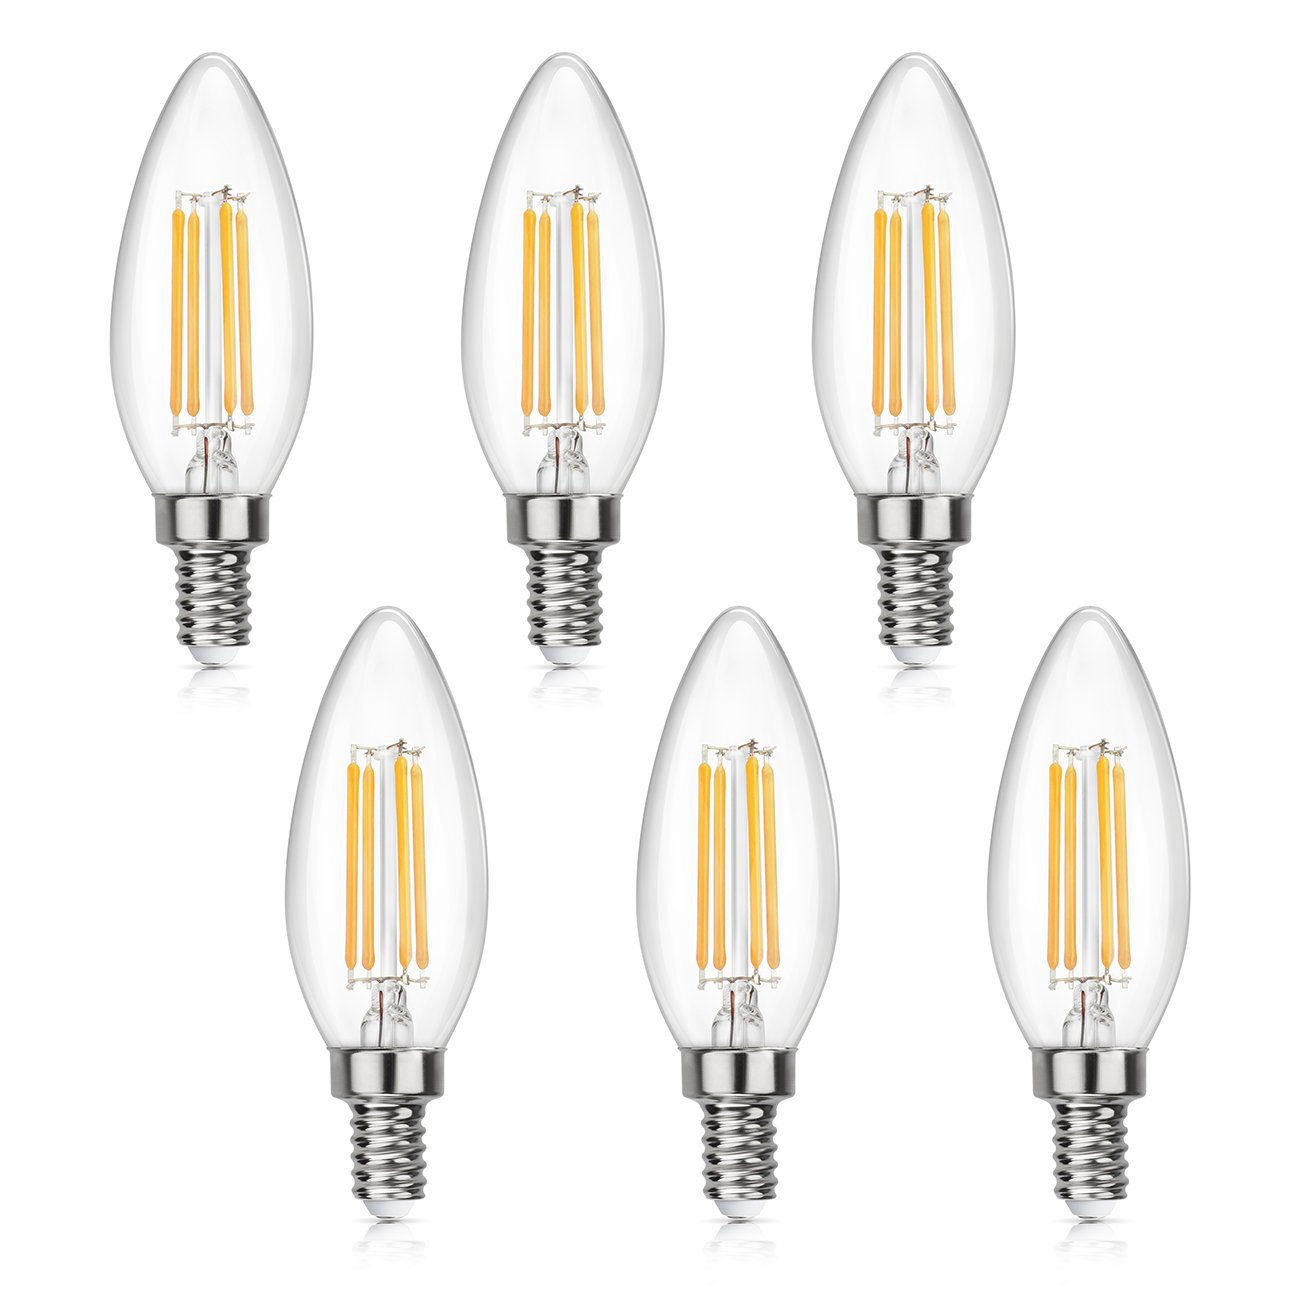 SHINE HAI Candelabra LED Filament Bulbs 40W Equivalent, 2700K Warm White Chandelier B11 LED Bulb E12 Base Non-dimmable Decorative Candle Light Bulb, Pack of 6